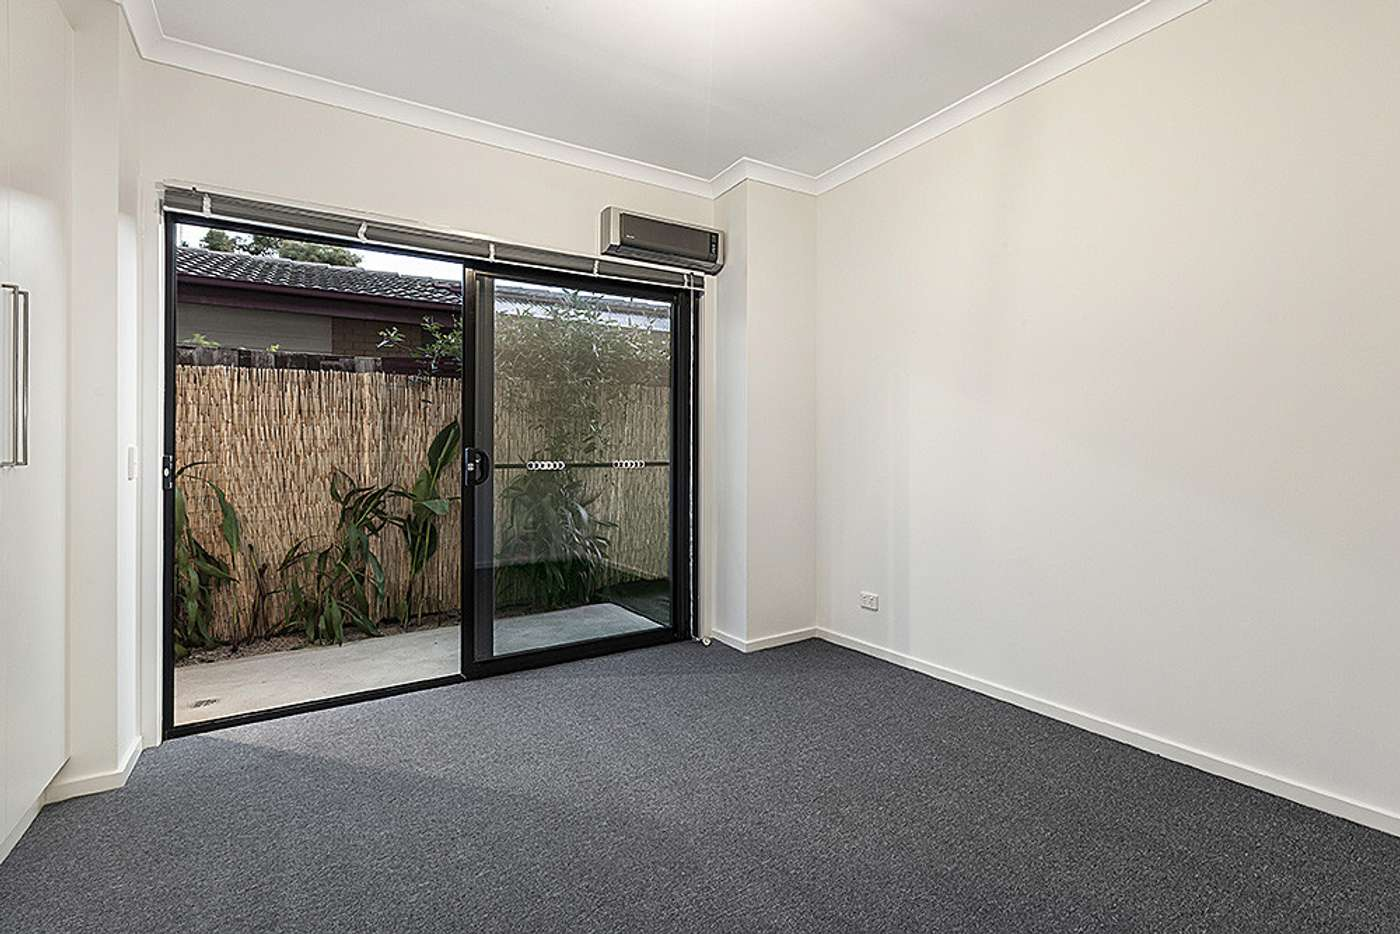 Sixth view of Homely townhouse listing, 163 Stokes Street, Port Melbourne VIC 3207